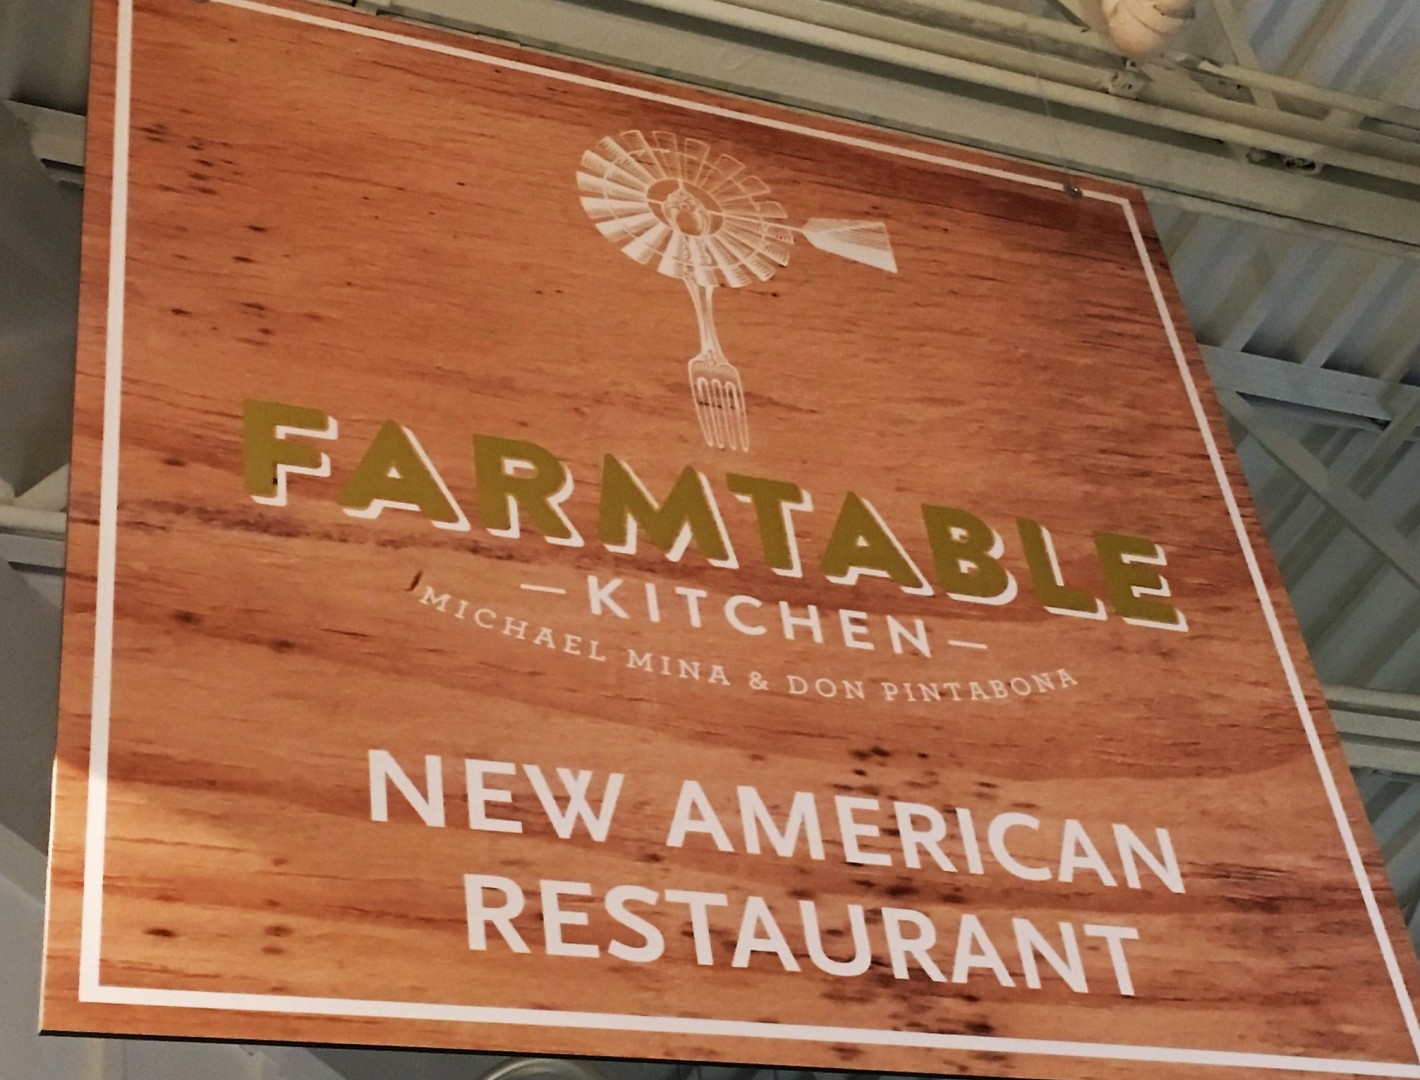 Locale Market and FarmTable Kitchen